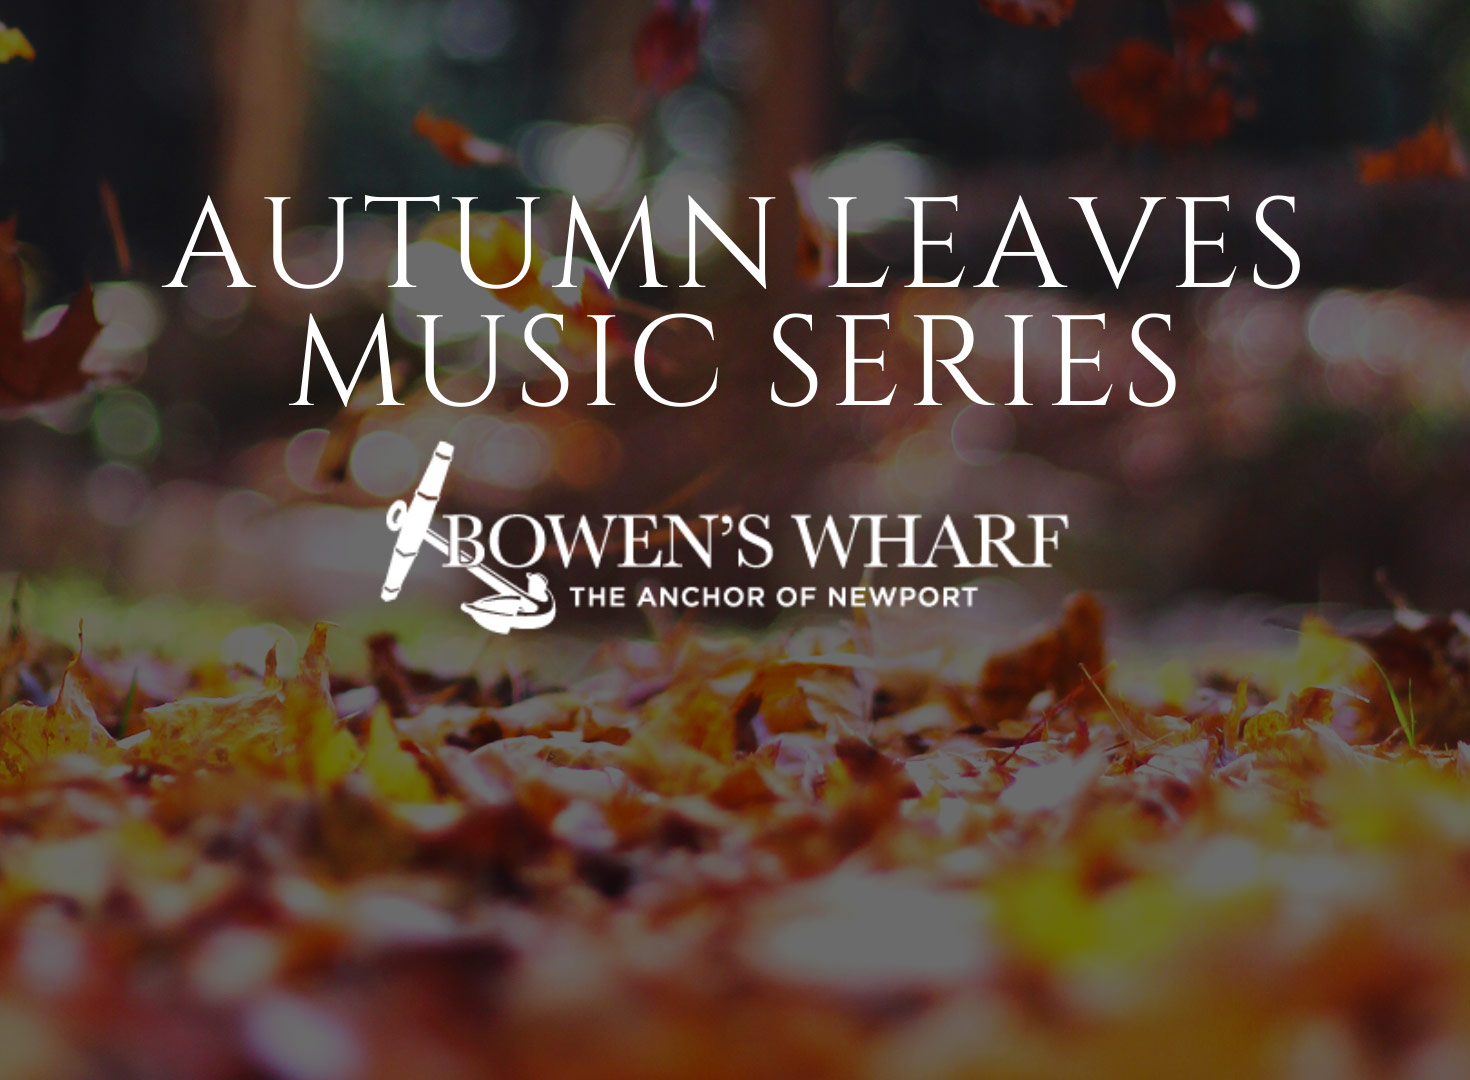 Autumn Leaves Music Series